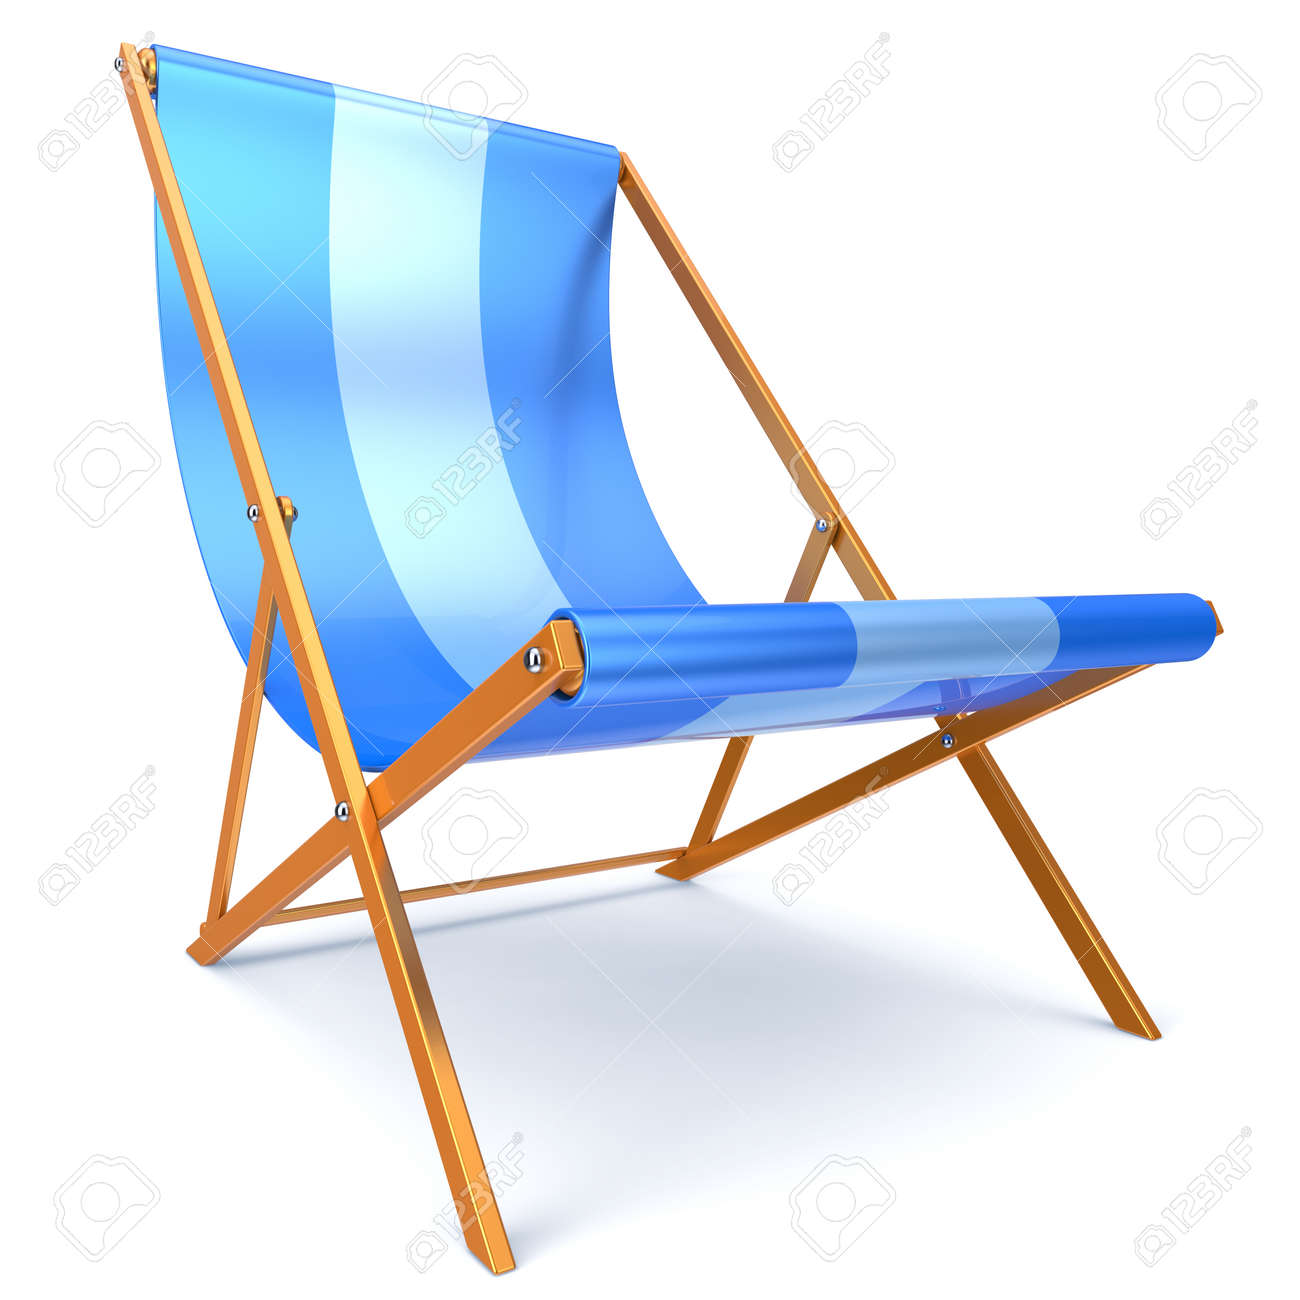 Genial Beach Chair Blue Chaise Longue Nobody Relaxation Holidays Spa Resort Summer  Sun Tropical Sunbathing Travel Leisure